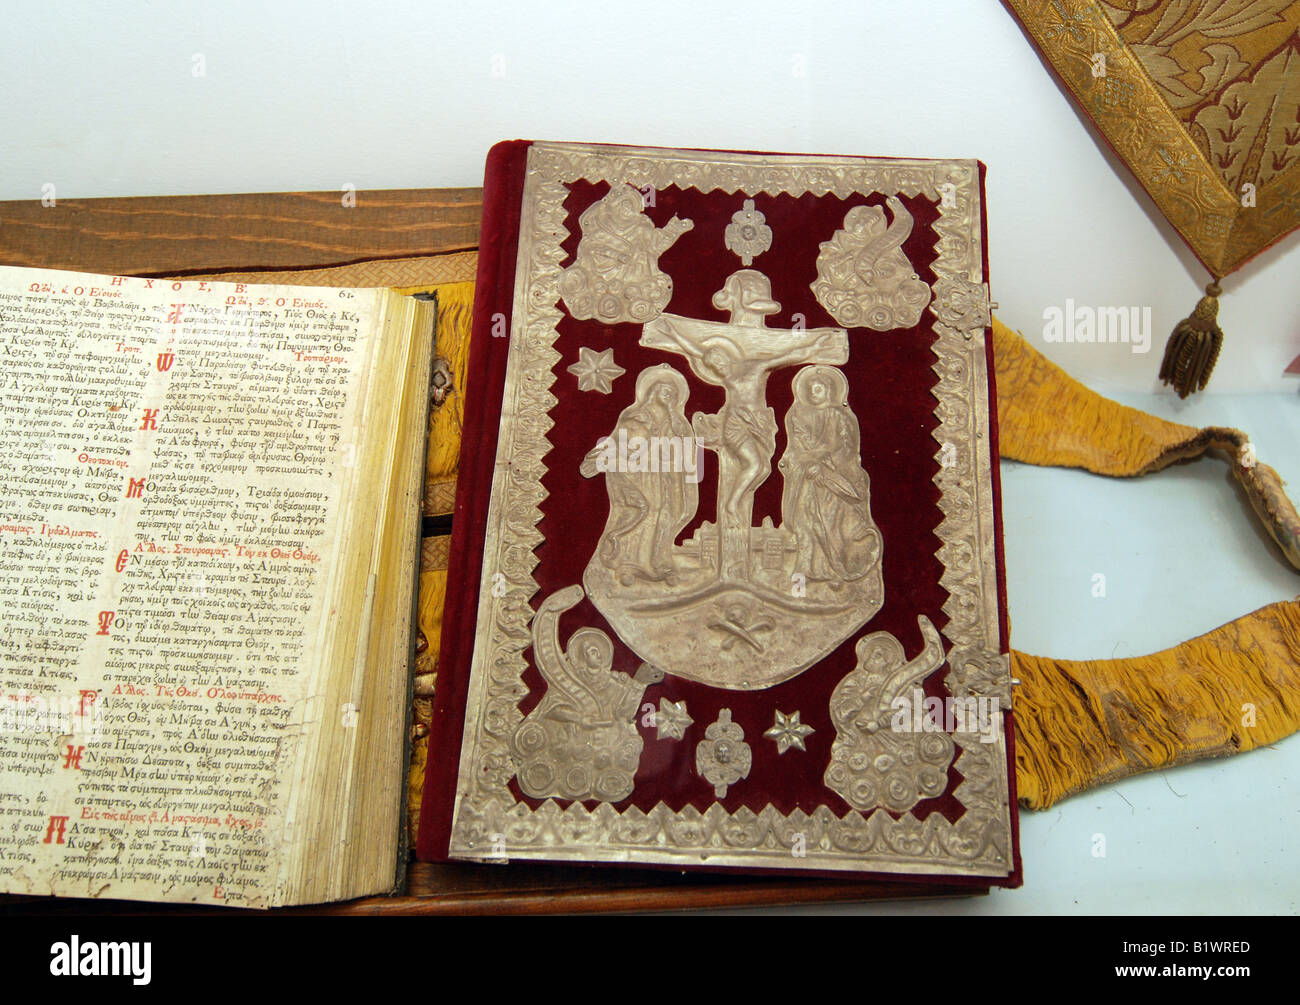 The bible with decorated binding in paleokastritsa for Decorated bible